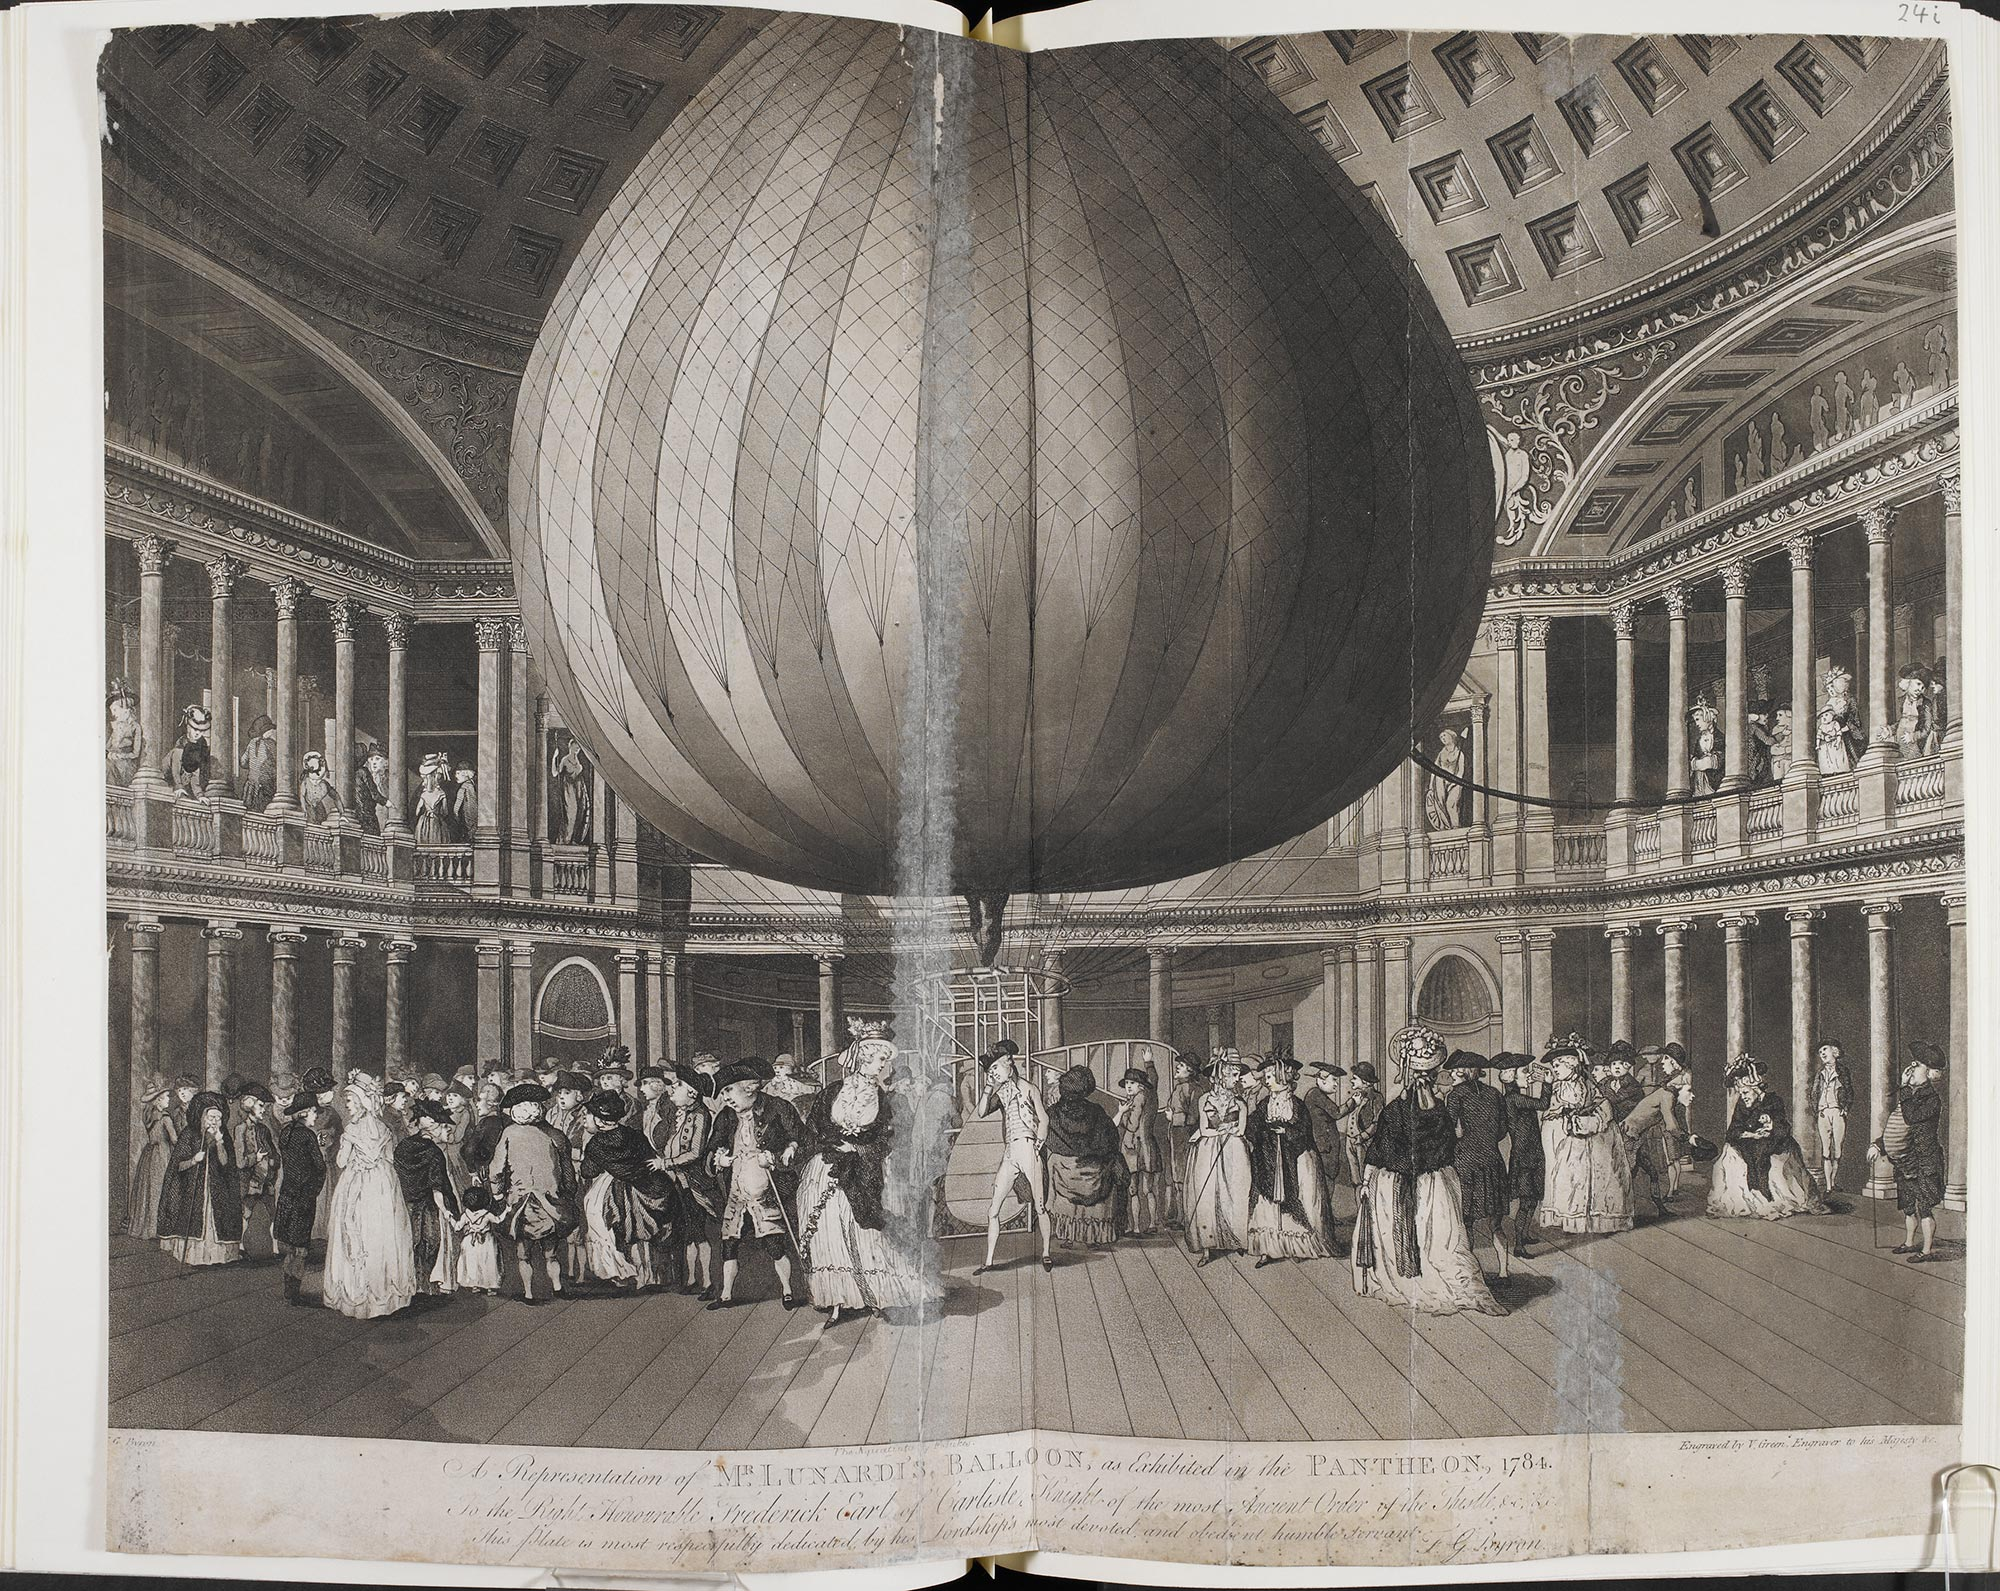 A Representation of Mr Lunardi's Balloon, as Exhibited in the Pantheon, 1784